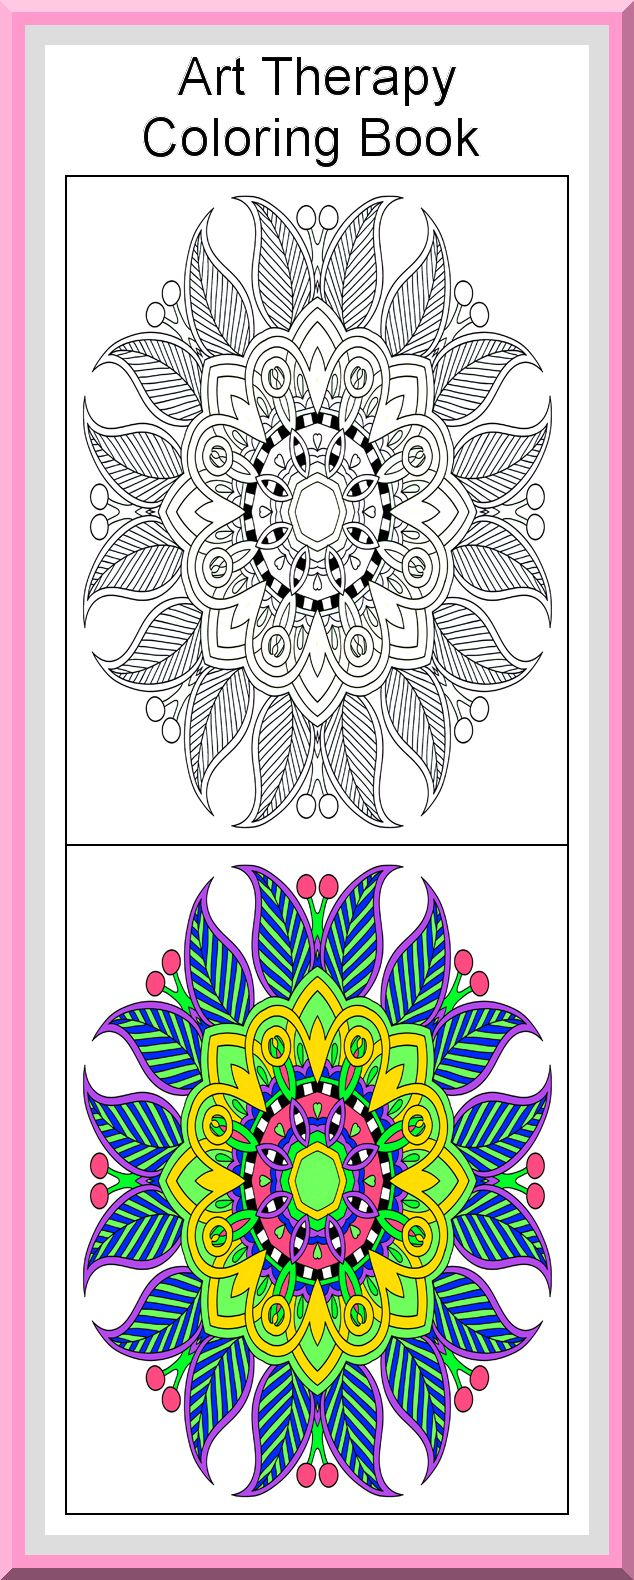 Coloring book outlines - Art Therapy Coloring Book 30 Printable Coloring Pages Outlines Color Examples Instant Download Art Therapy Coloring Pages